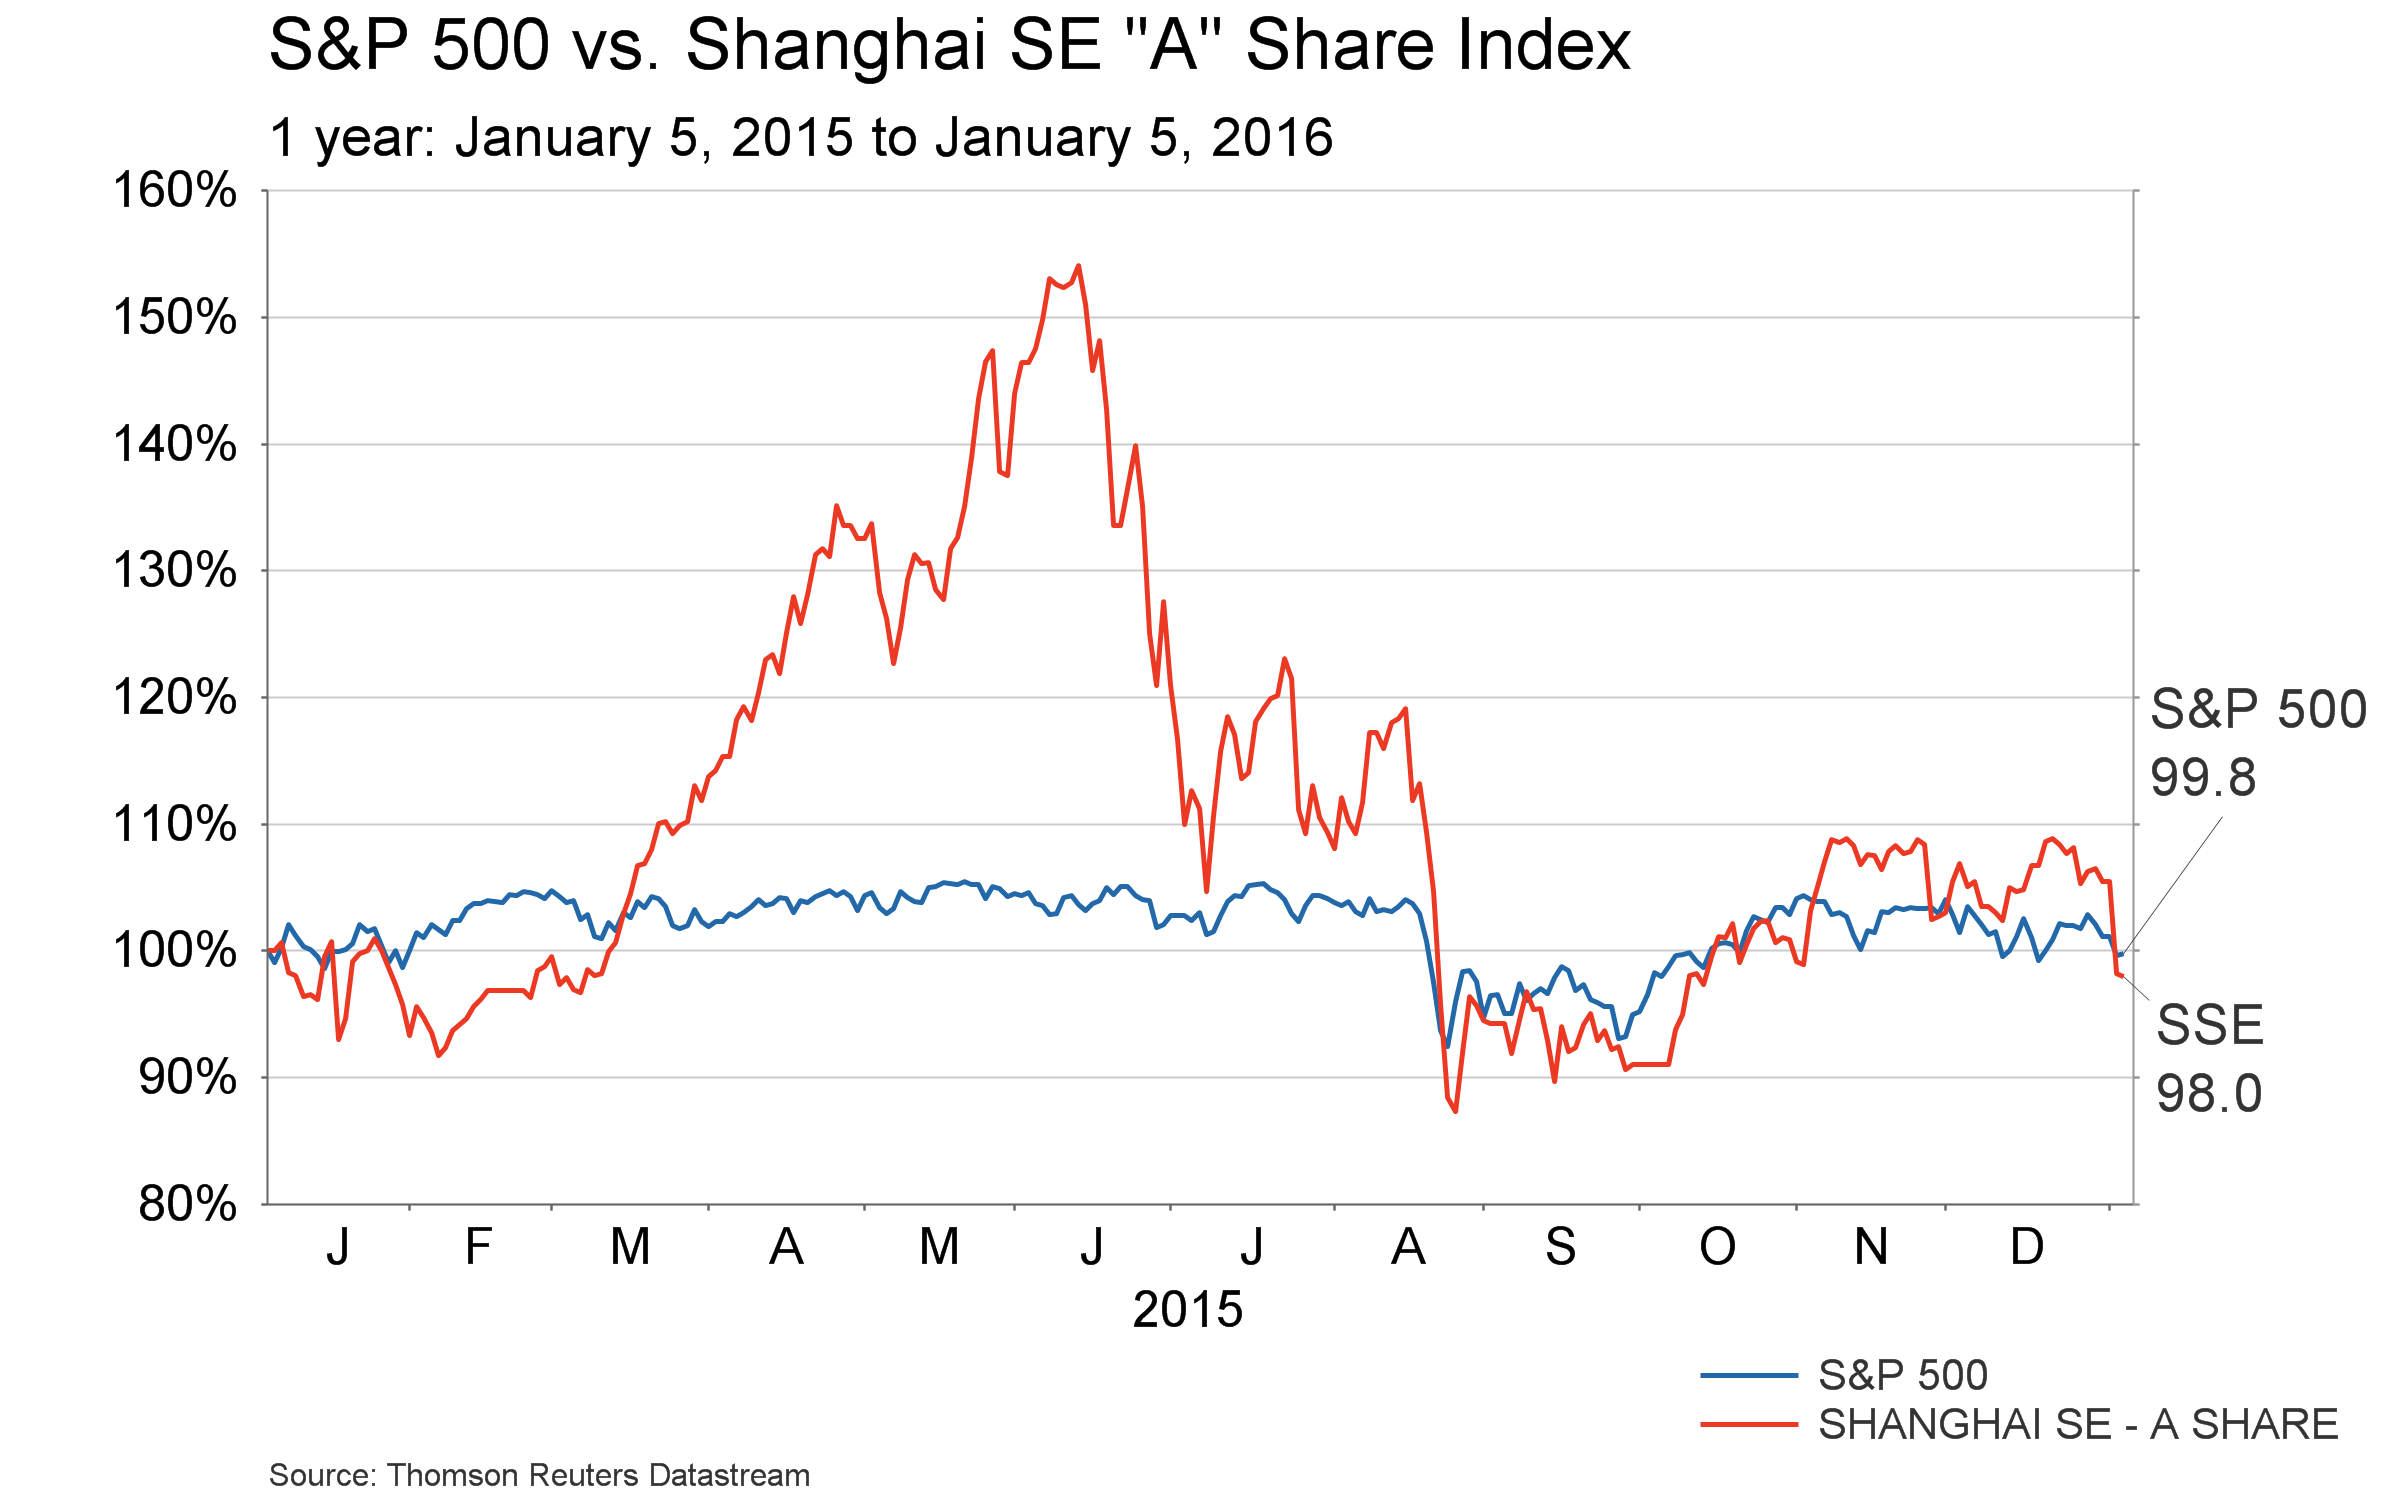 Conference Call charts - S&P 500 vs Shanghai - 1 year final